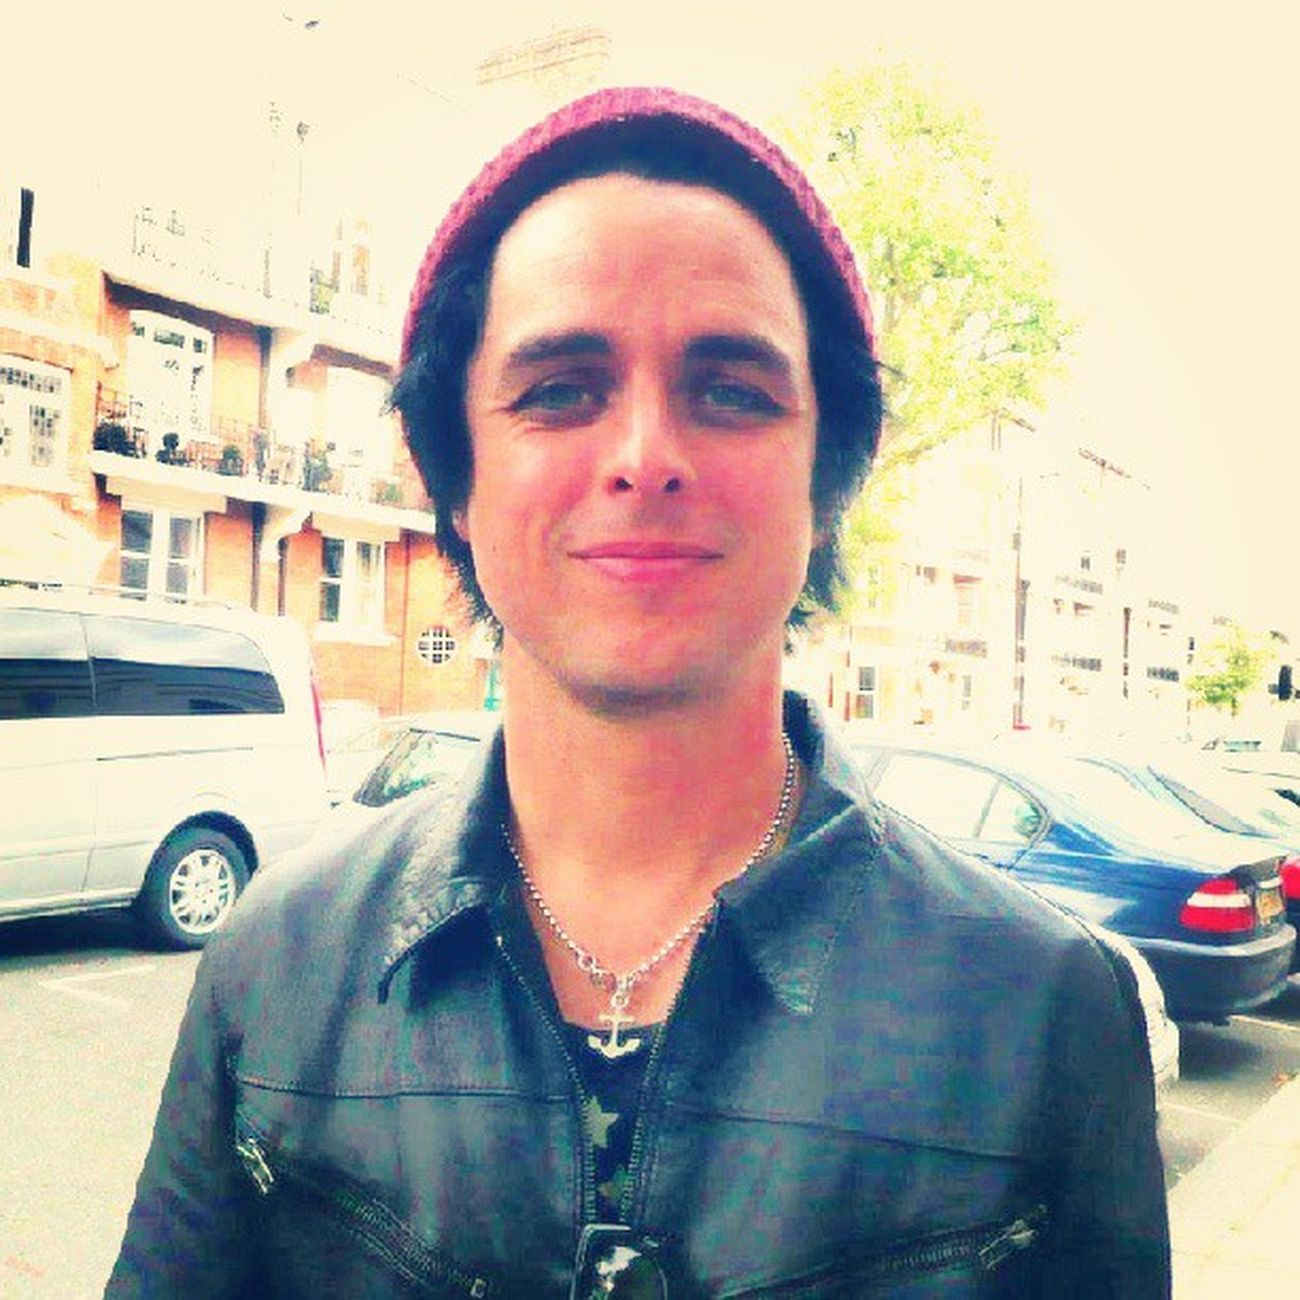 Perf Beautiful Greenday BillieJoe  Billiejoearmstrong perf perfect sexy punk rock band rockband group smile perfectsmile cheeky eyes themeyesperfection fangirling obbsessed cute